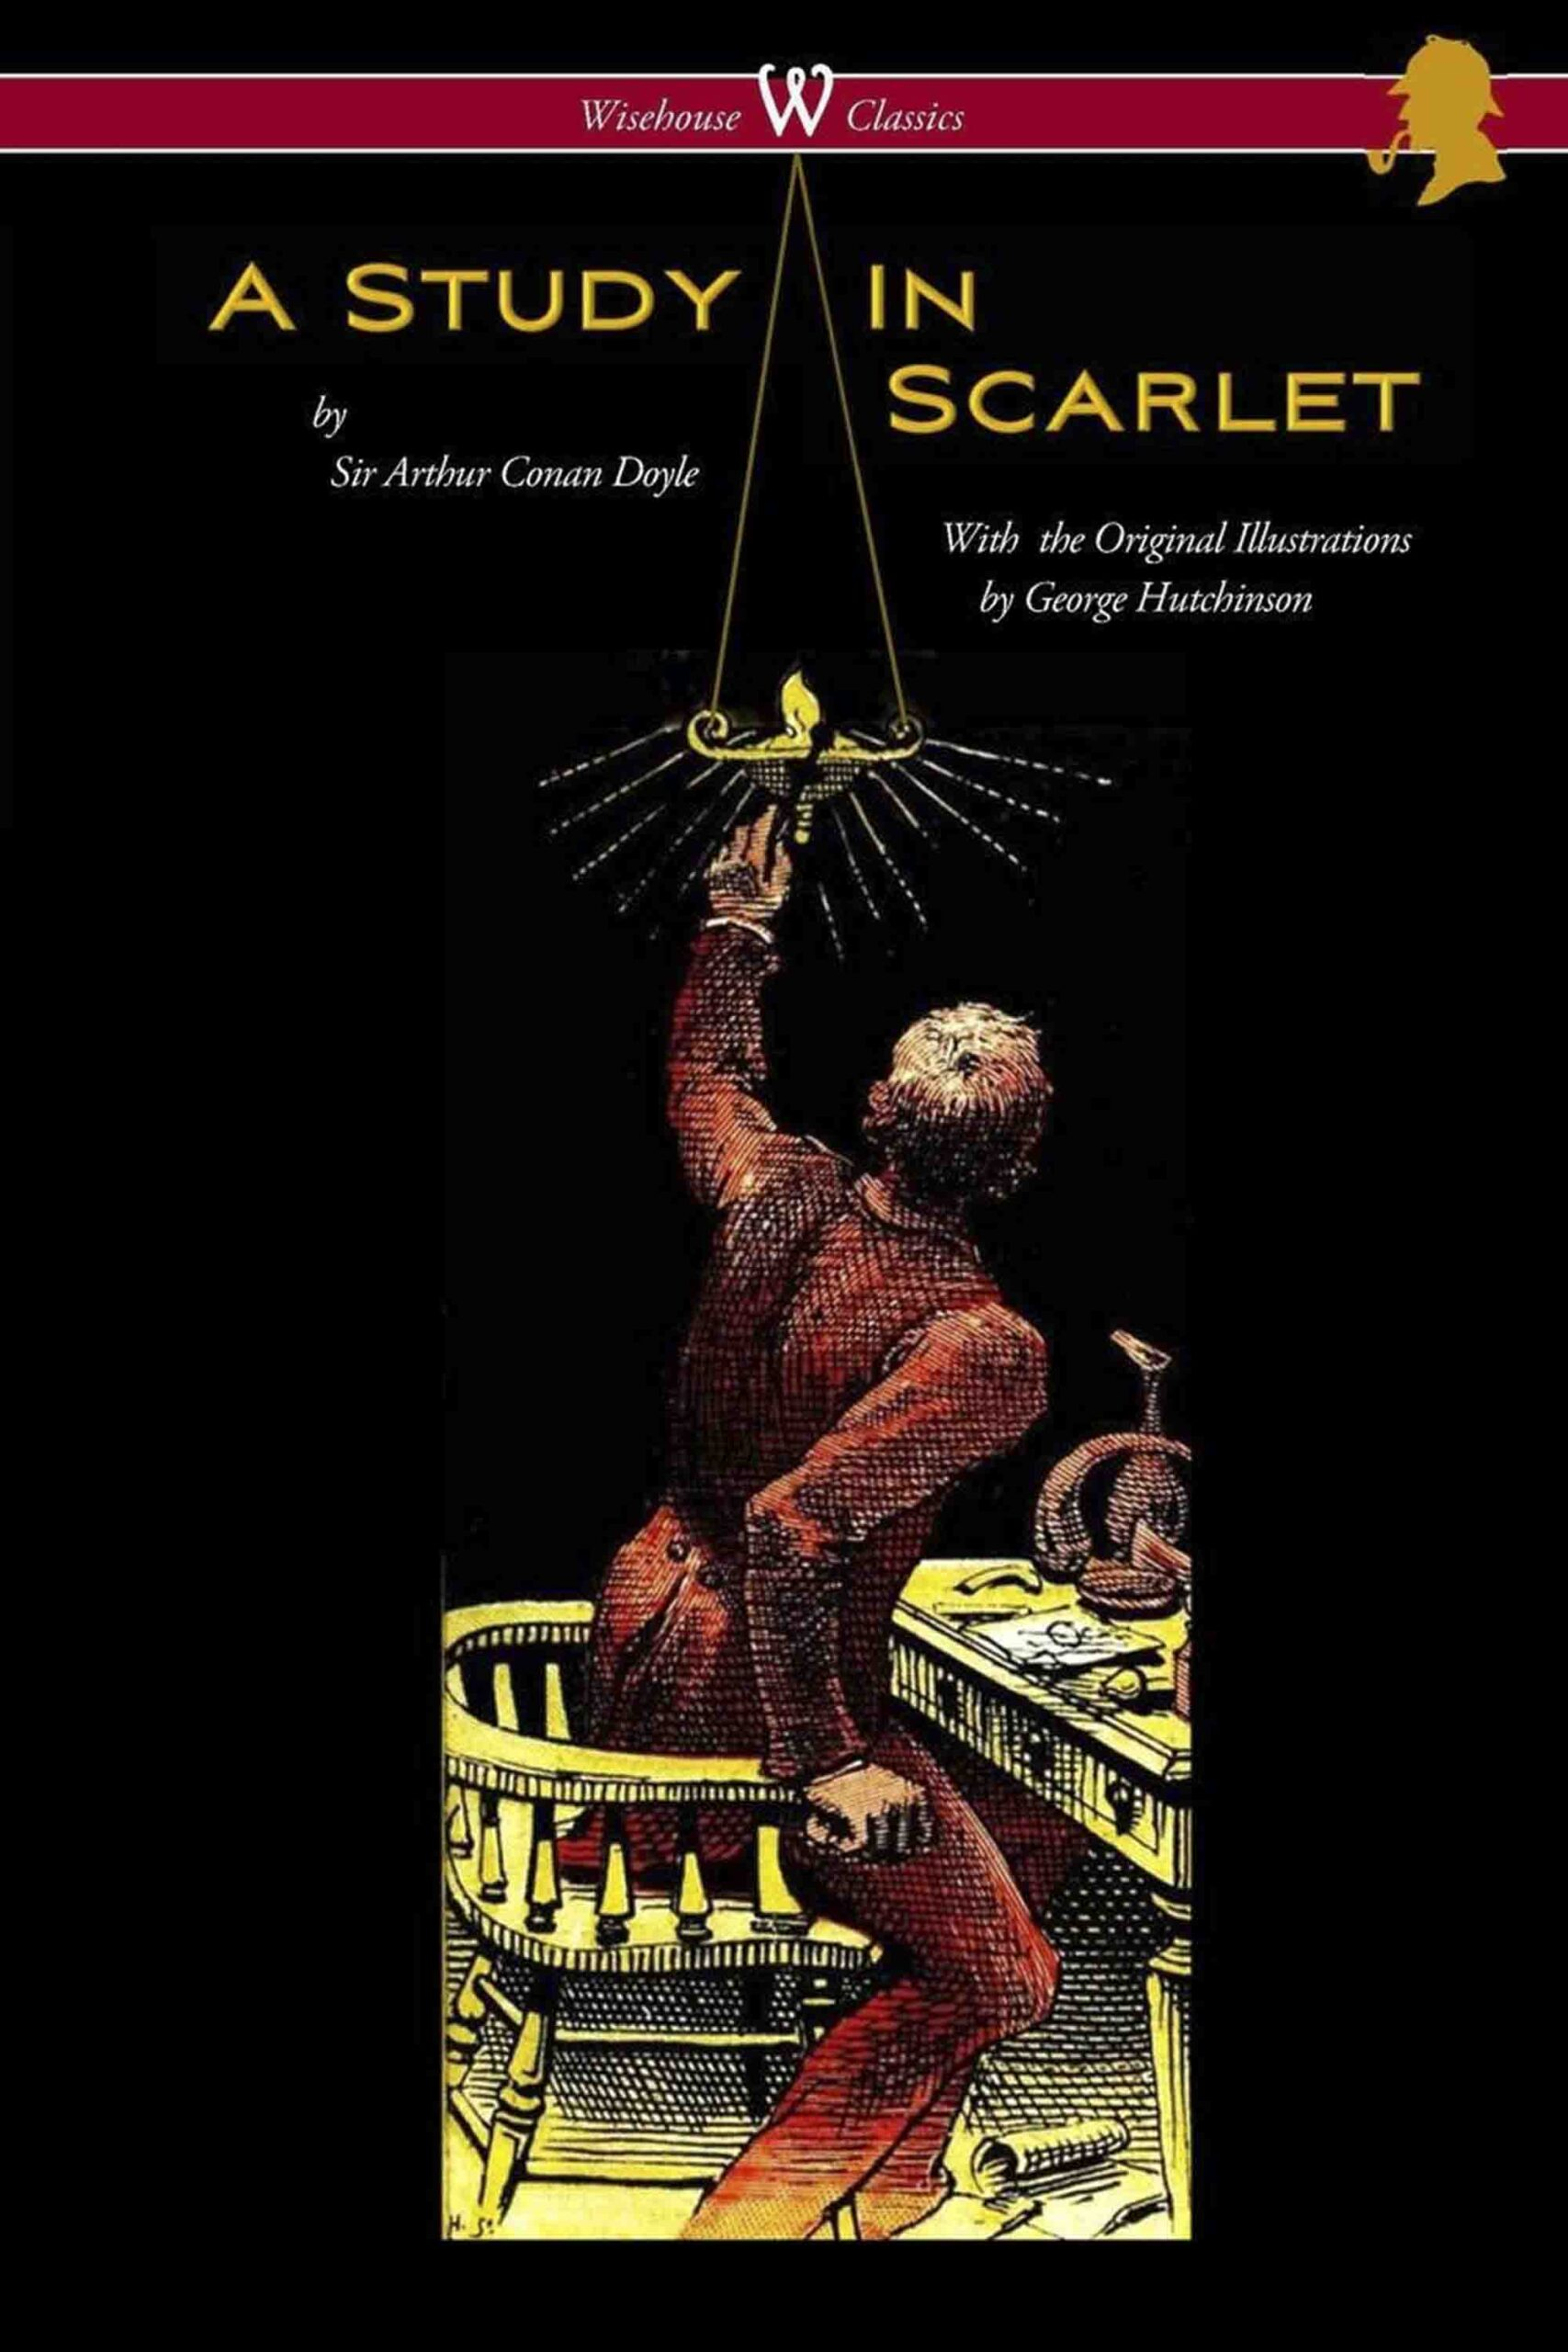 A Study in Scarlet (Wisehouse Classics Edition – with original illustrations by George Hutchinson)